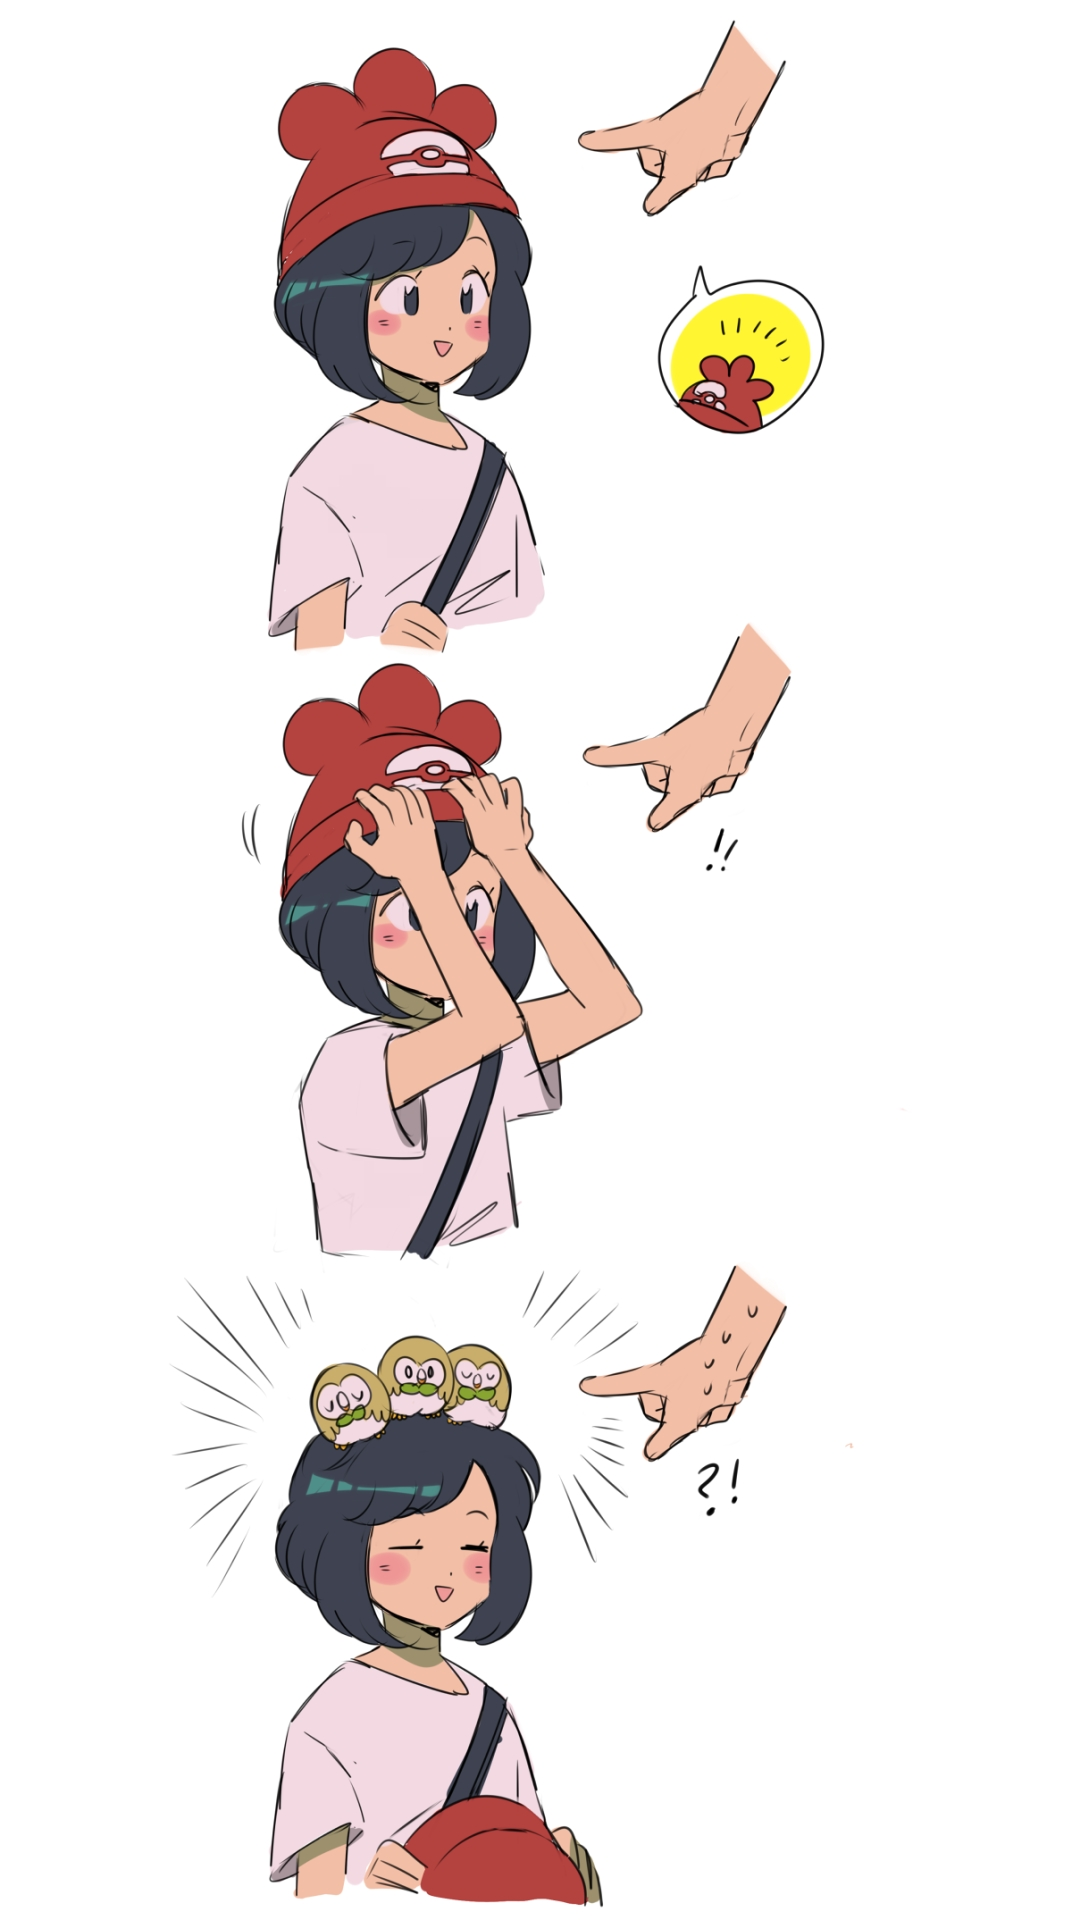 6ac6e4bb21ba3 In Pokemon Sun, I loved the female trainer! Only cause she looked like she  had a glove world hat on lol.